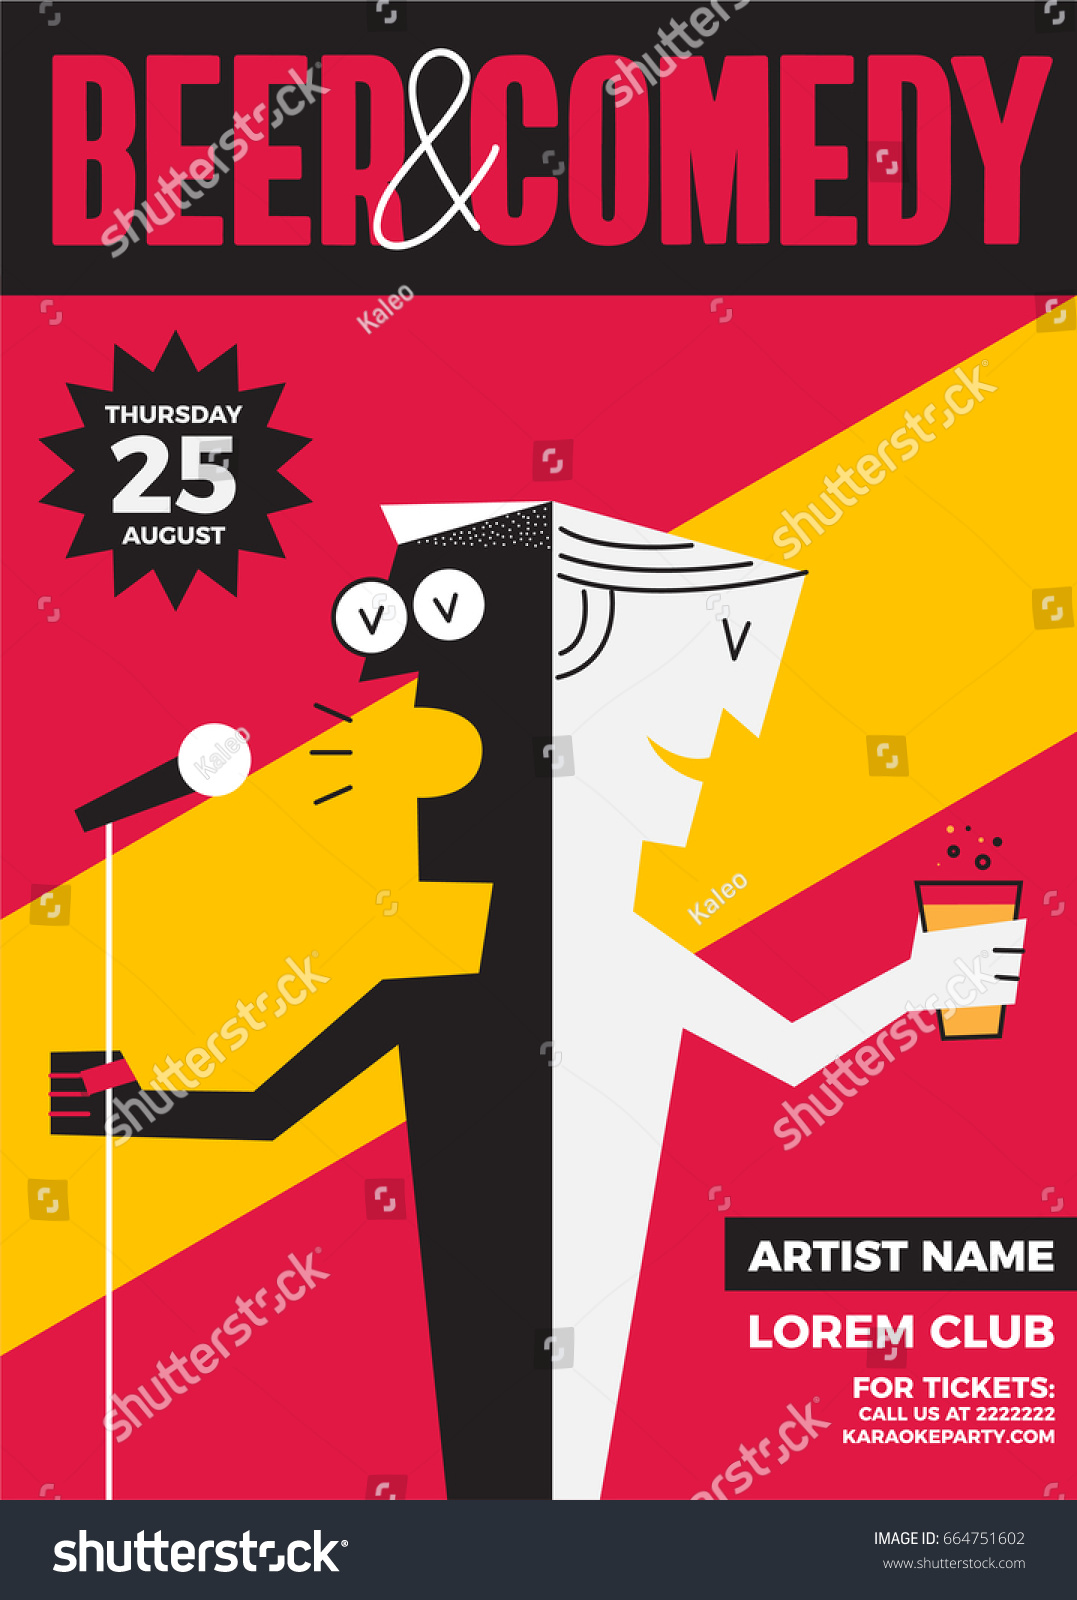 Beer Comedy Concept Stand Comedy Poster Stock Vector Royalty Free